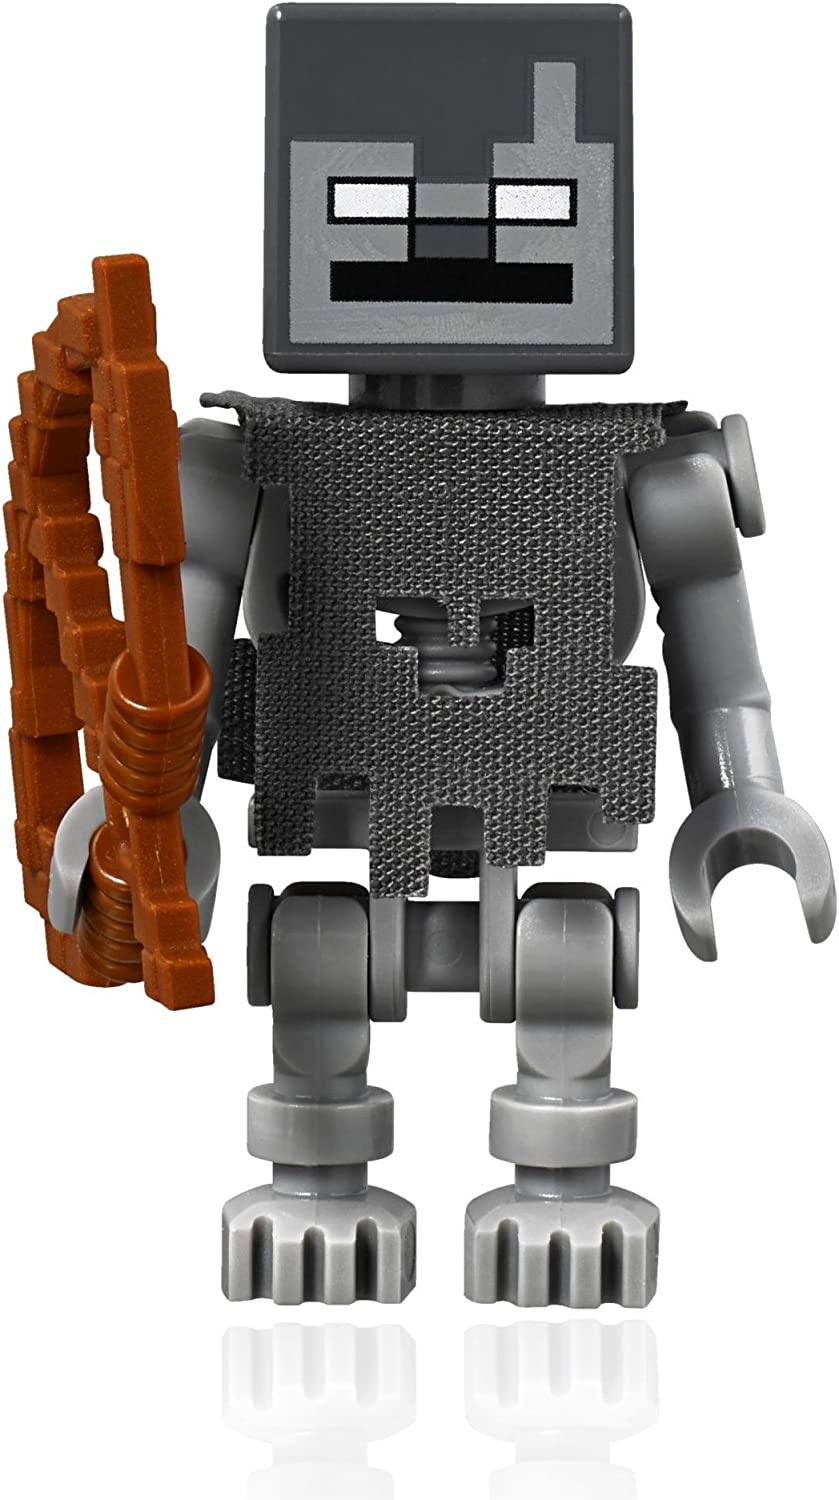 LEGO Minecraft Minifigure - Stray The Skeleton with Cube Skull (21142)